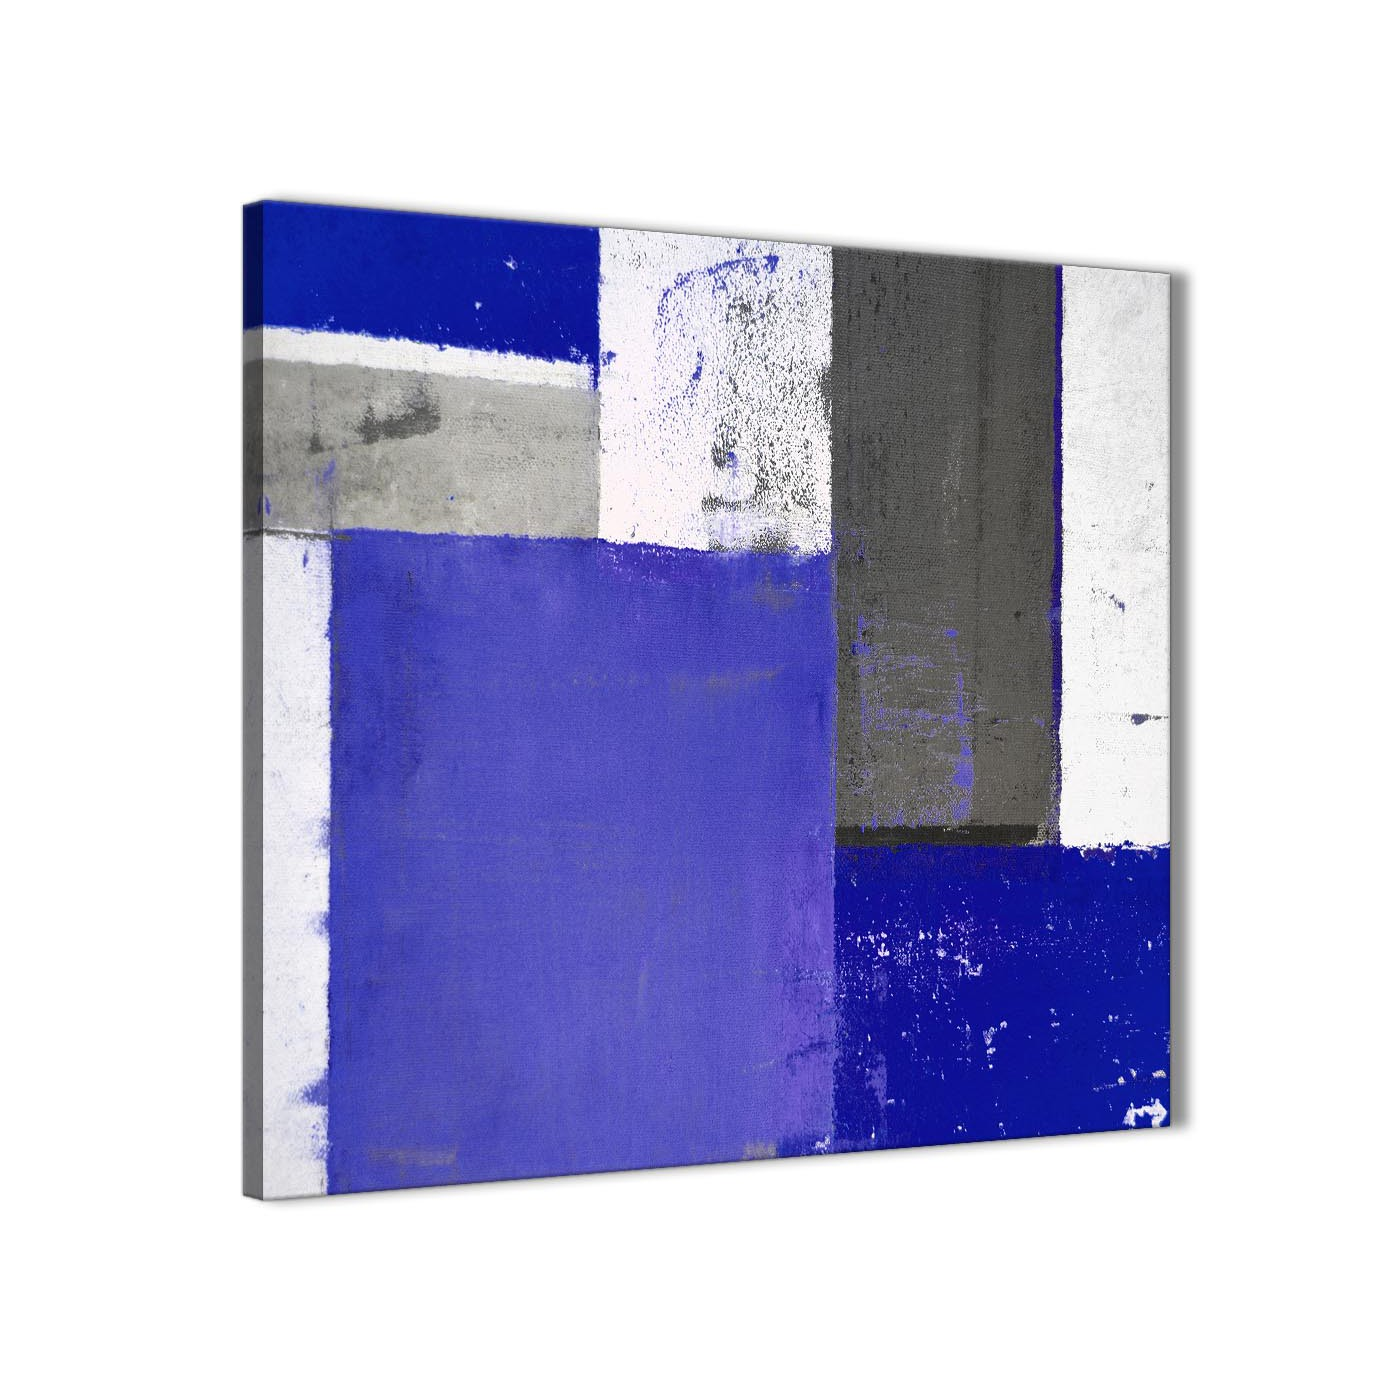 Modern indigo navy blue abstract painting canvas wall art print modern 79cm square 1s338l for your display gallery item 1